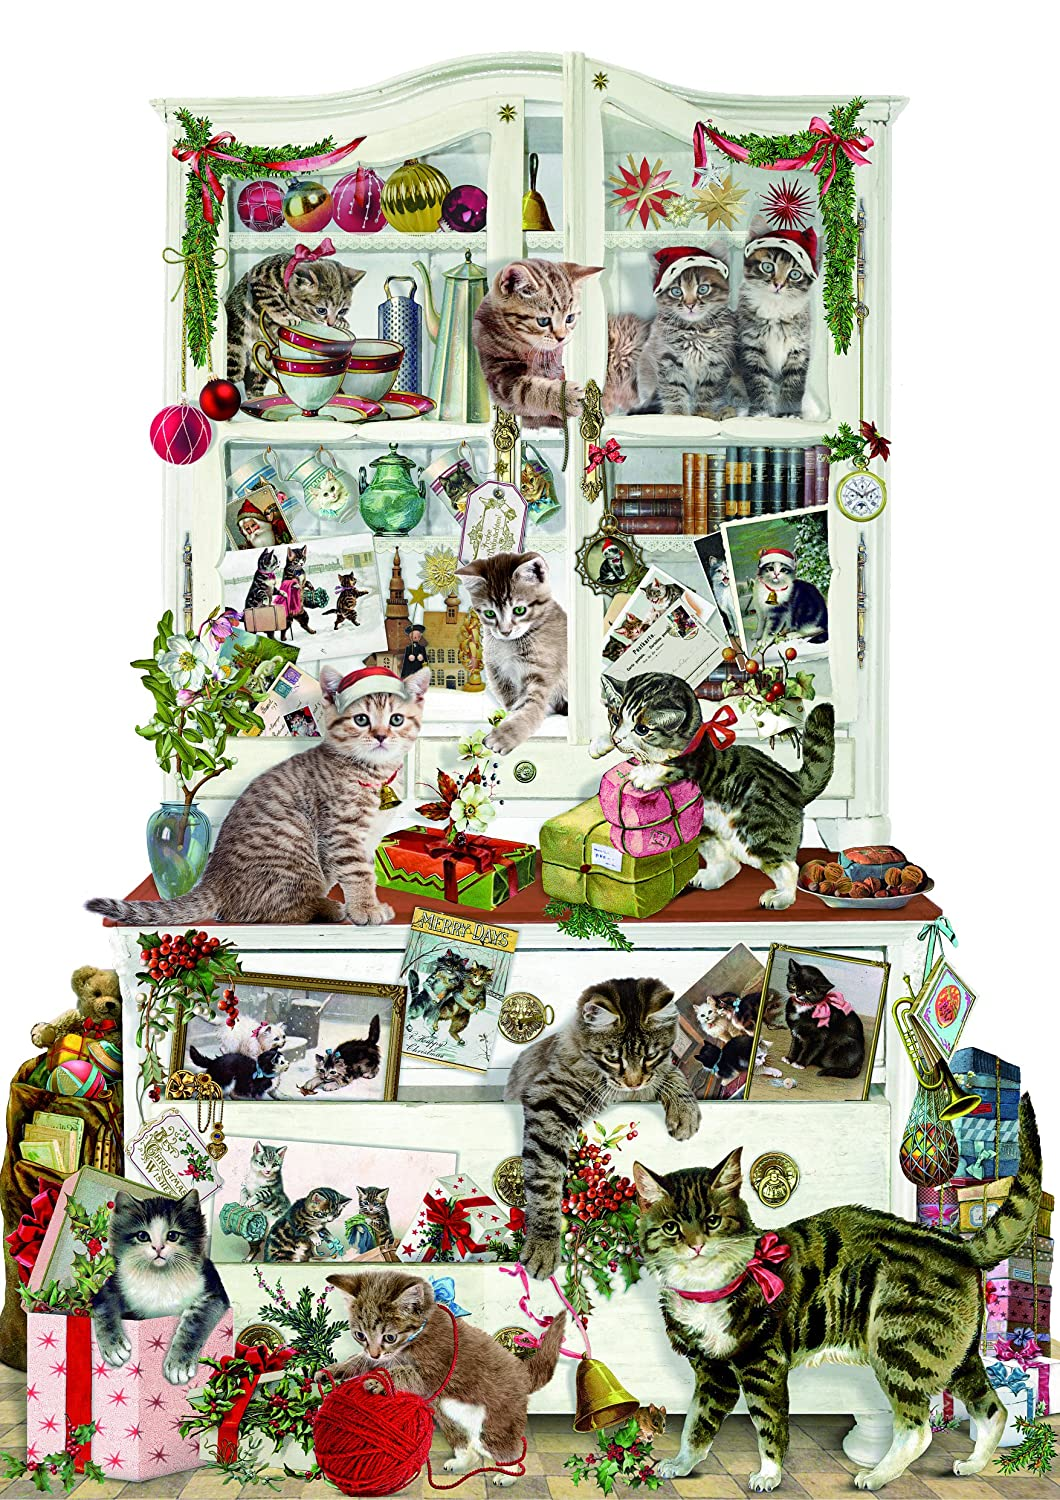 Coppenrath Advent Calendar 'Mischievous Christmas Cats' Traditional